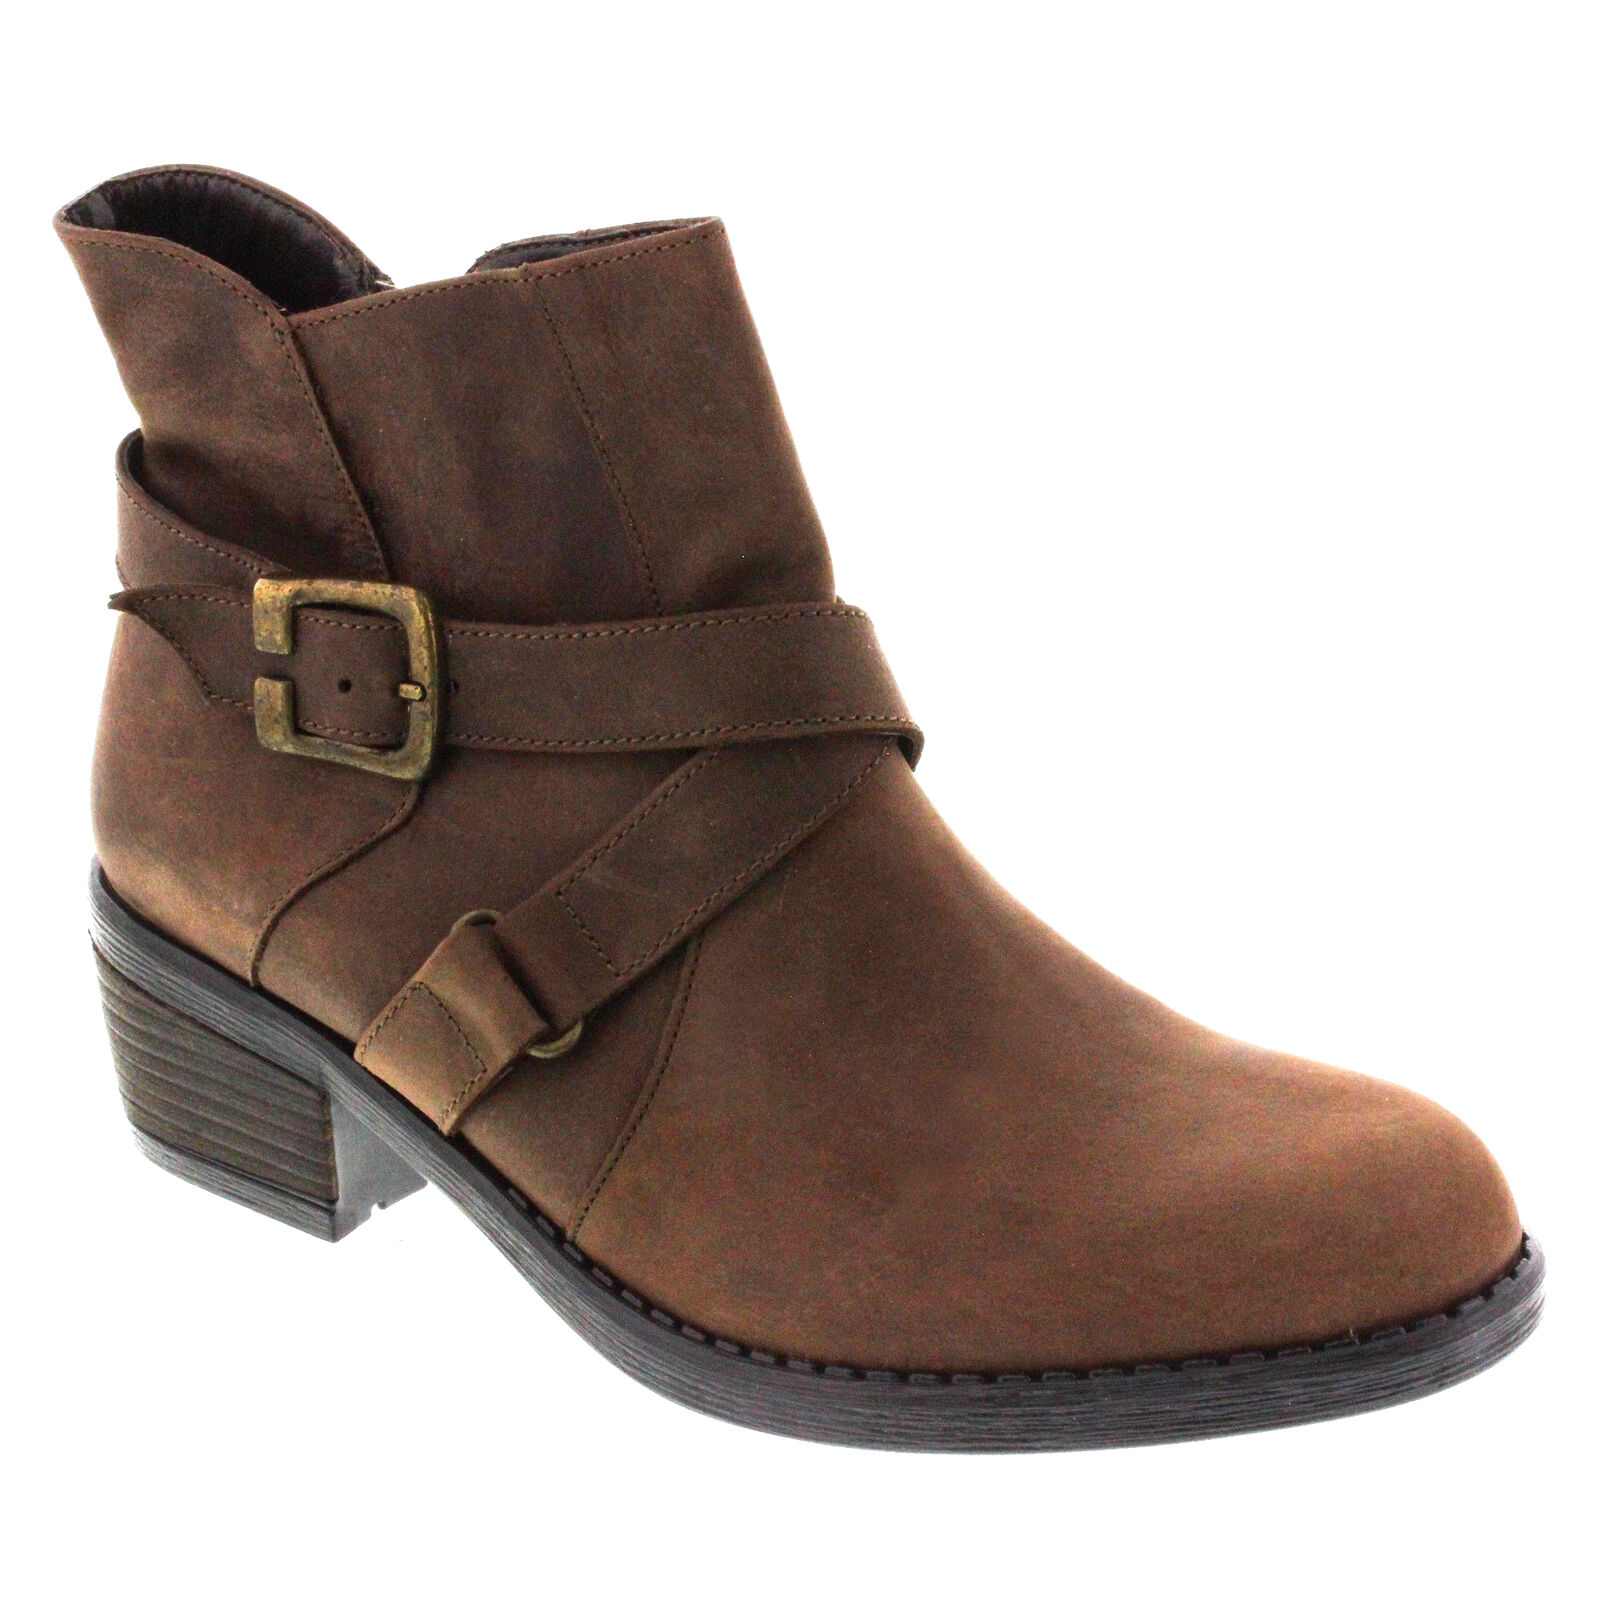 CREEKS - Veronica Boots  Vintage Leather  Made in France